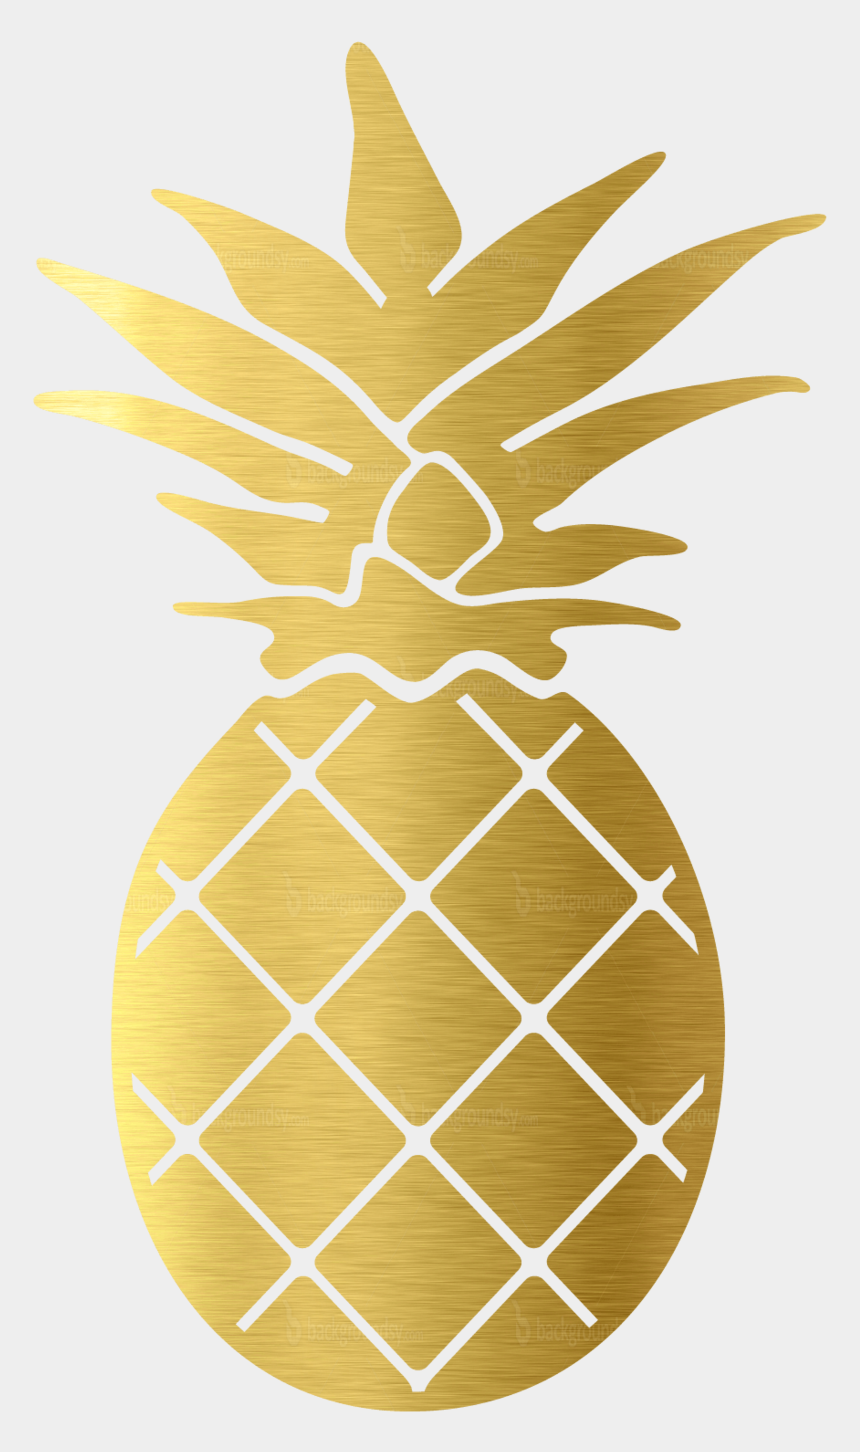 alexander the great clipart, Cartoons - Ann M - Luchini - Gold Pineapple Clipart Png